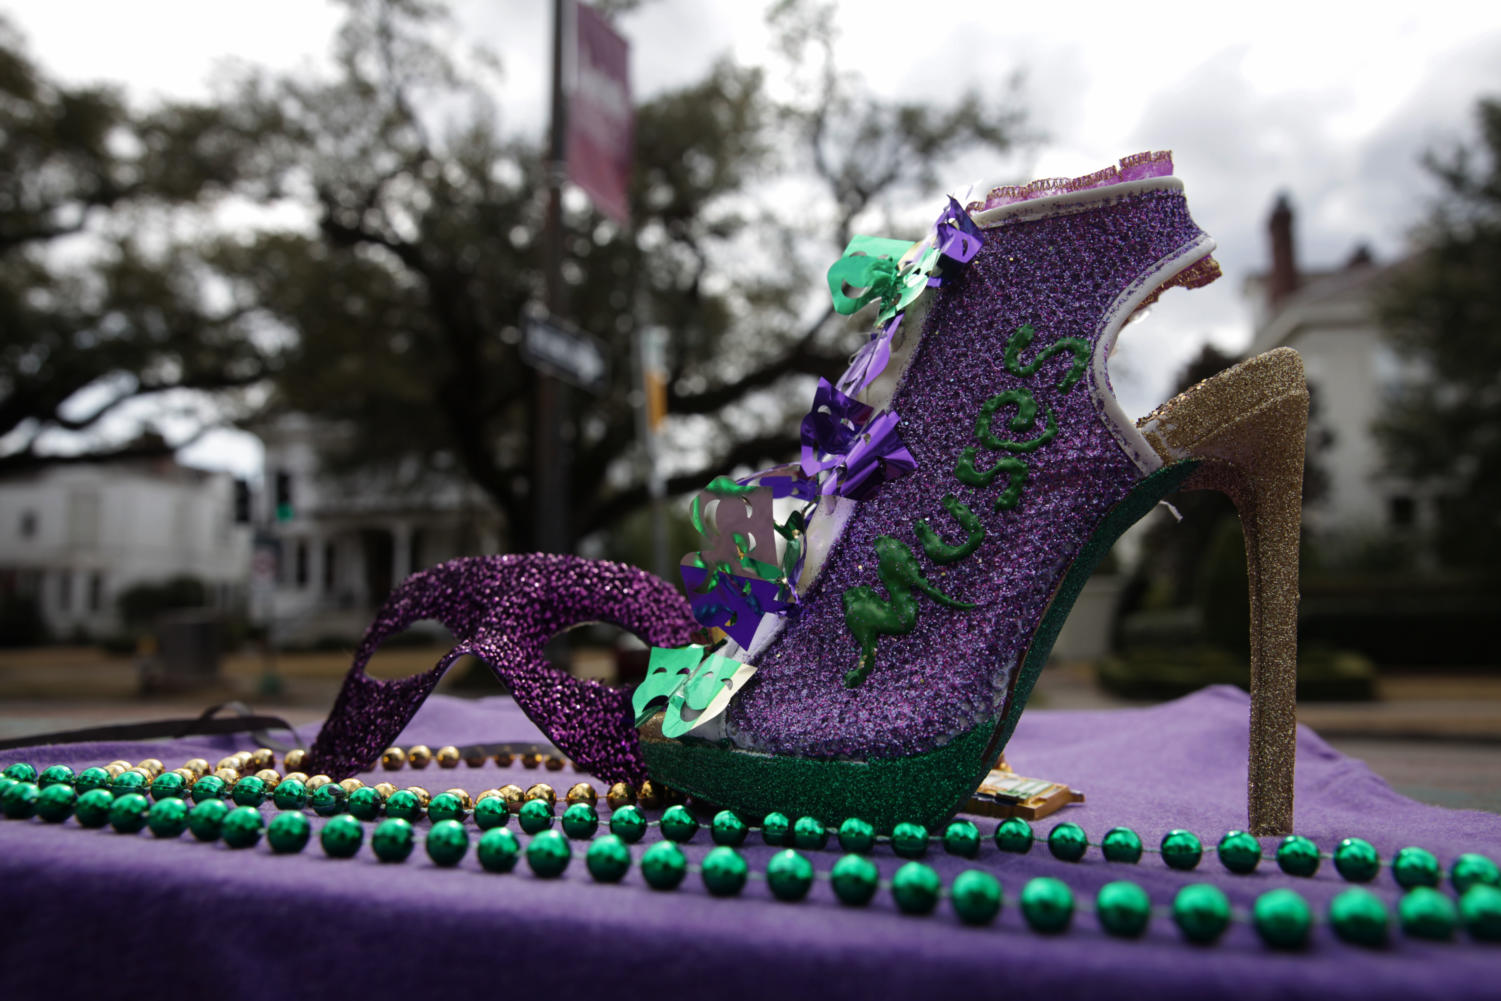 The Krewe of Muses is an all-female krewe well known for their high heel throws. The Krewe of Muses was established in 2001 and rolled on Feb. 8 at 6:30 p.m. Photo credit: Angelo Imbraguglio